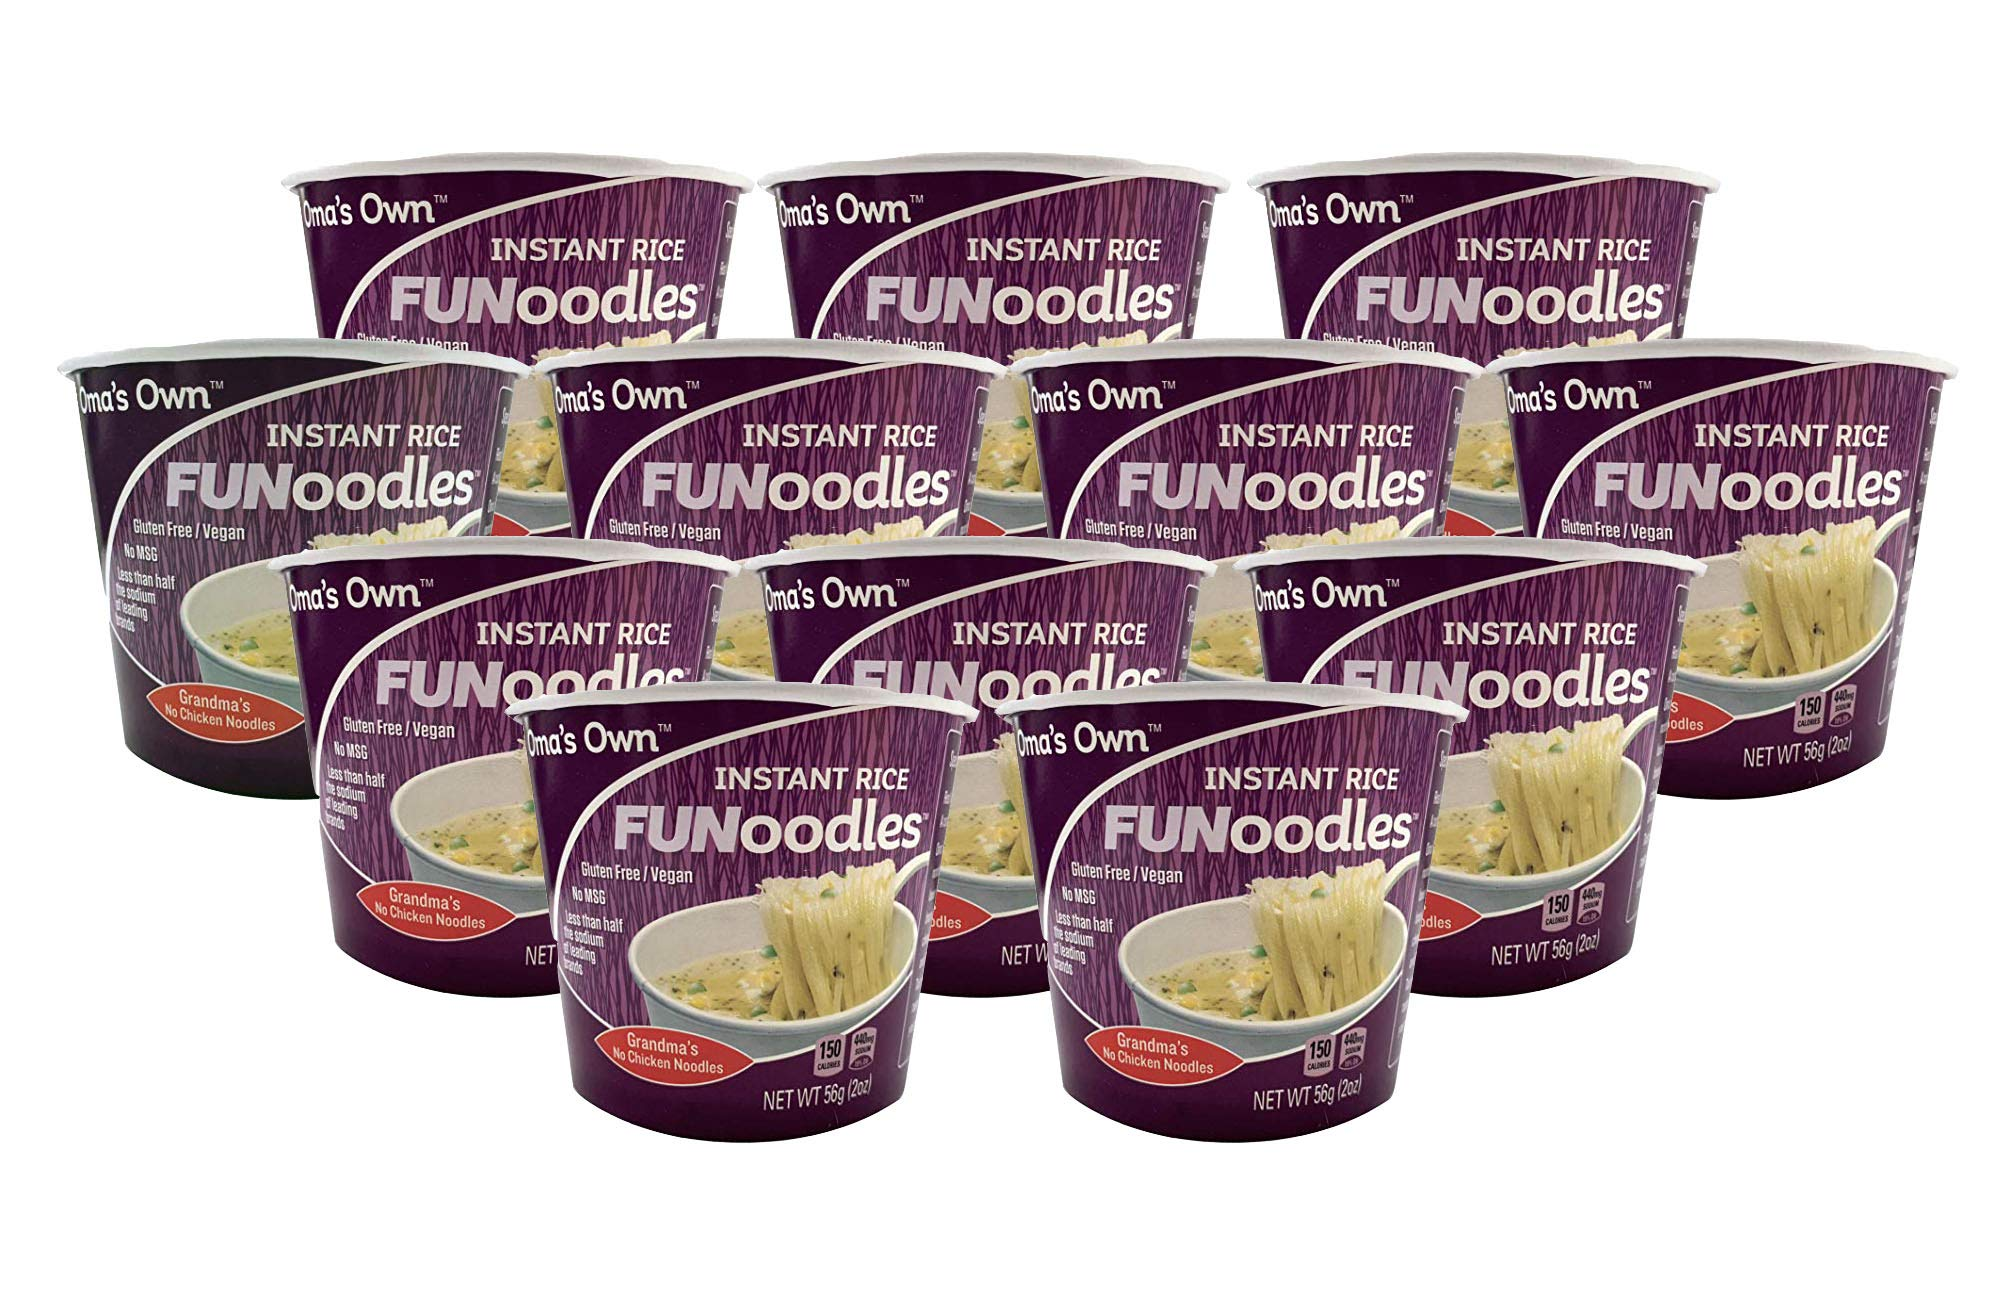 Oma's Own FUNoodles (Grandma's No Chicken Noodles) Vegan, Gluten Free, No MSG, Non-GMO, 2 oz cups (12 count) ... by OMA'S OWN